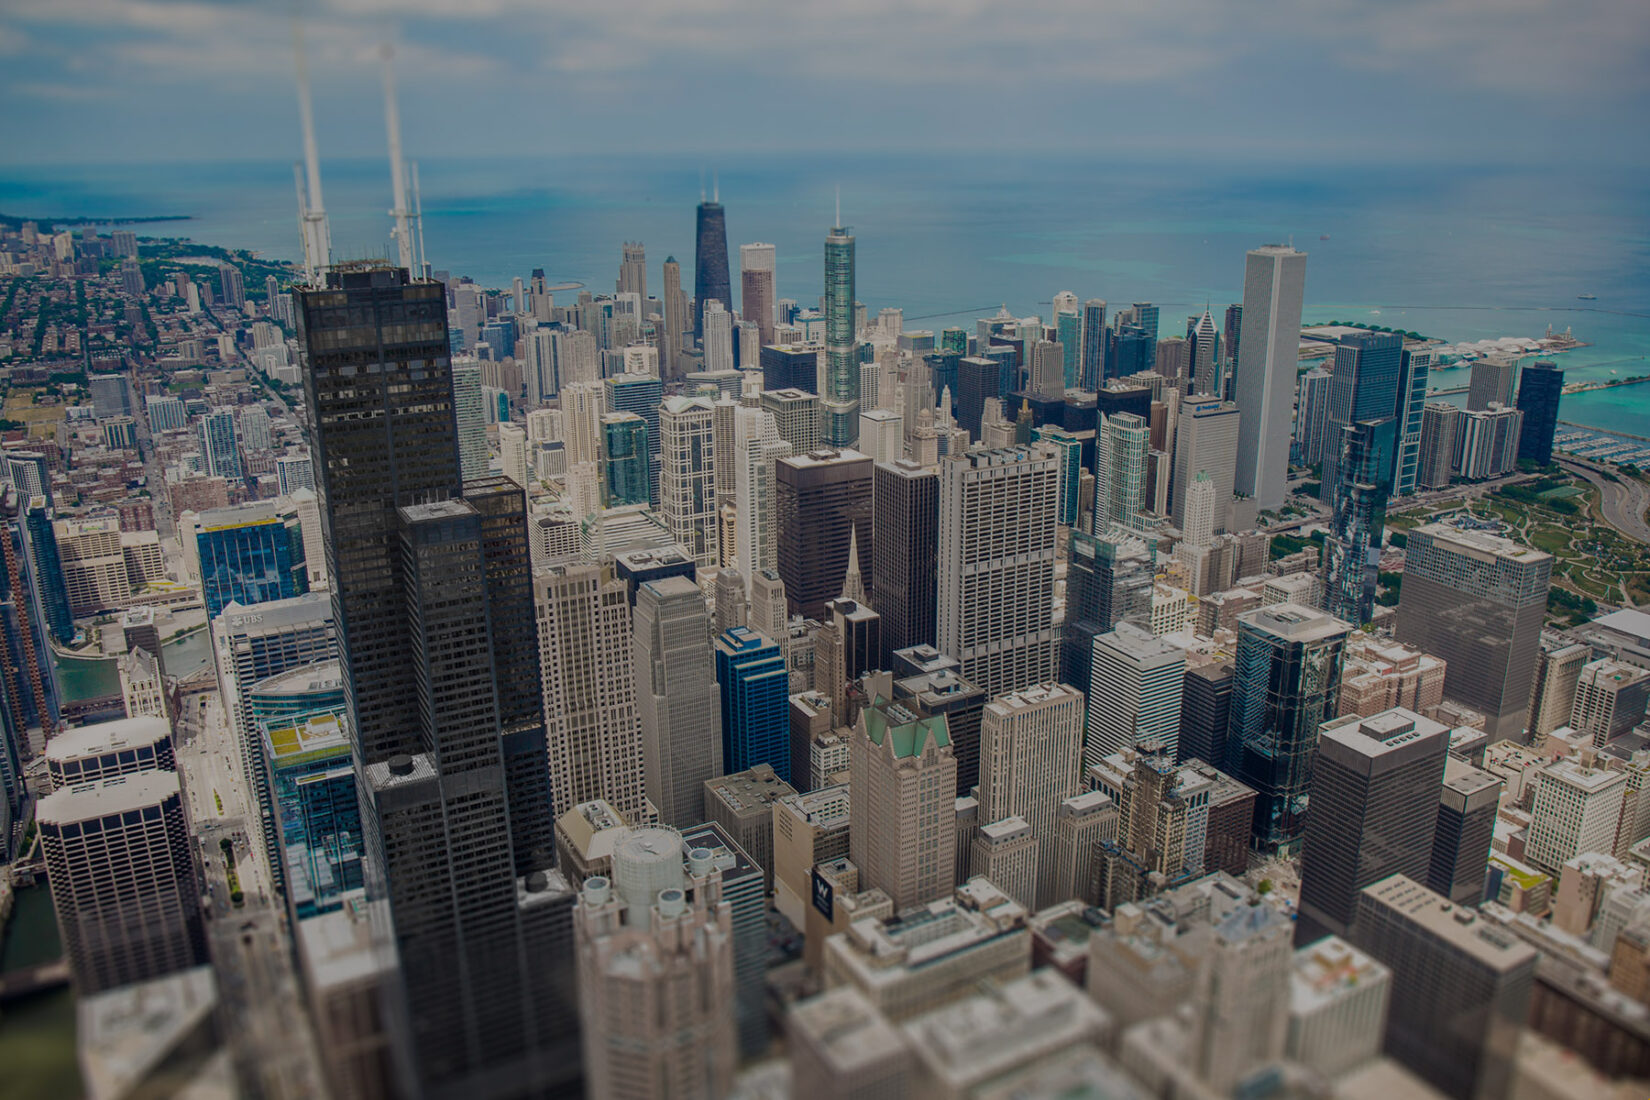 Aerial View of Chicago on a Partly Cloudy Day